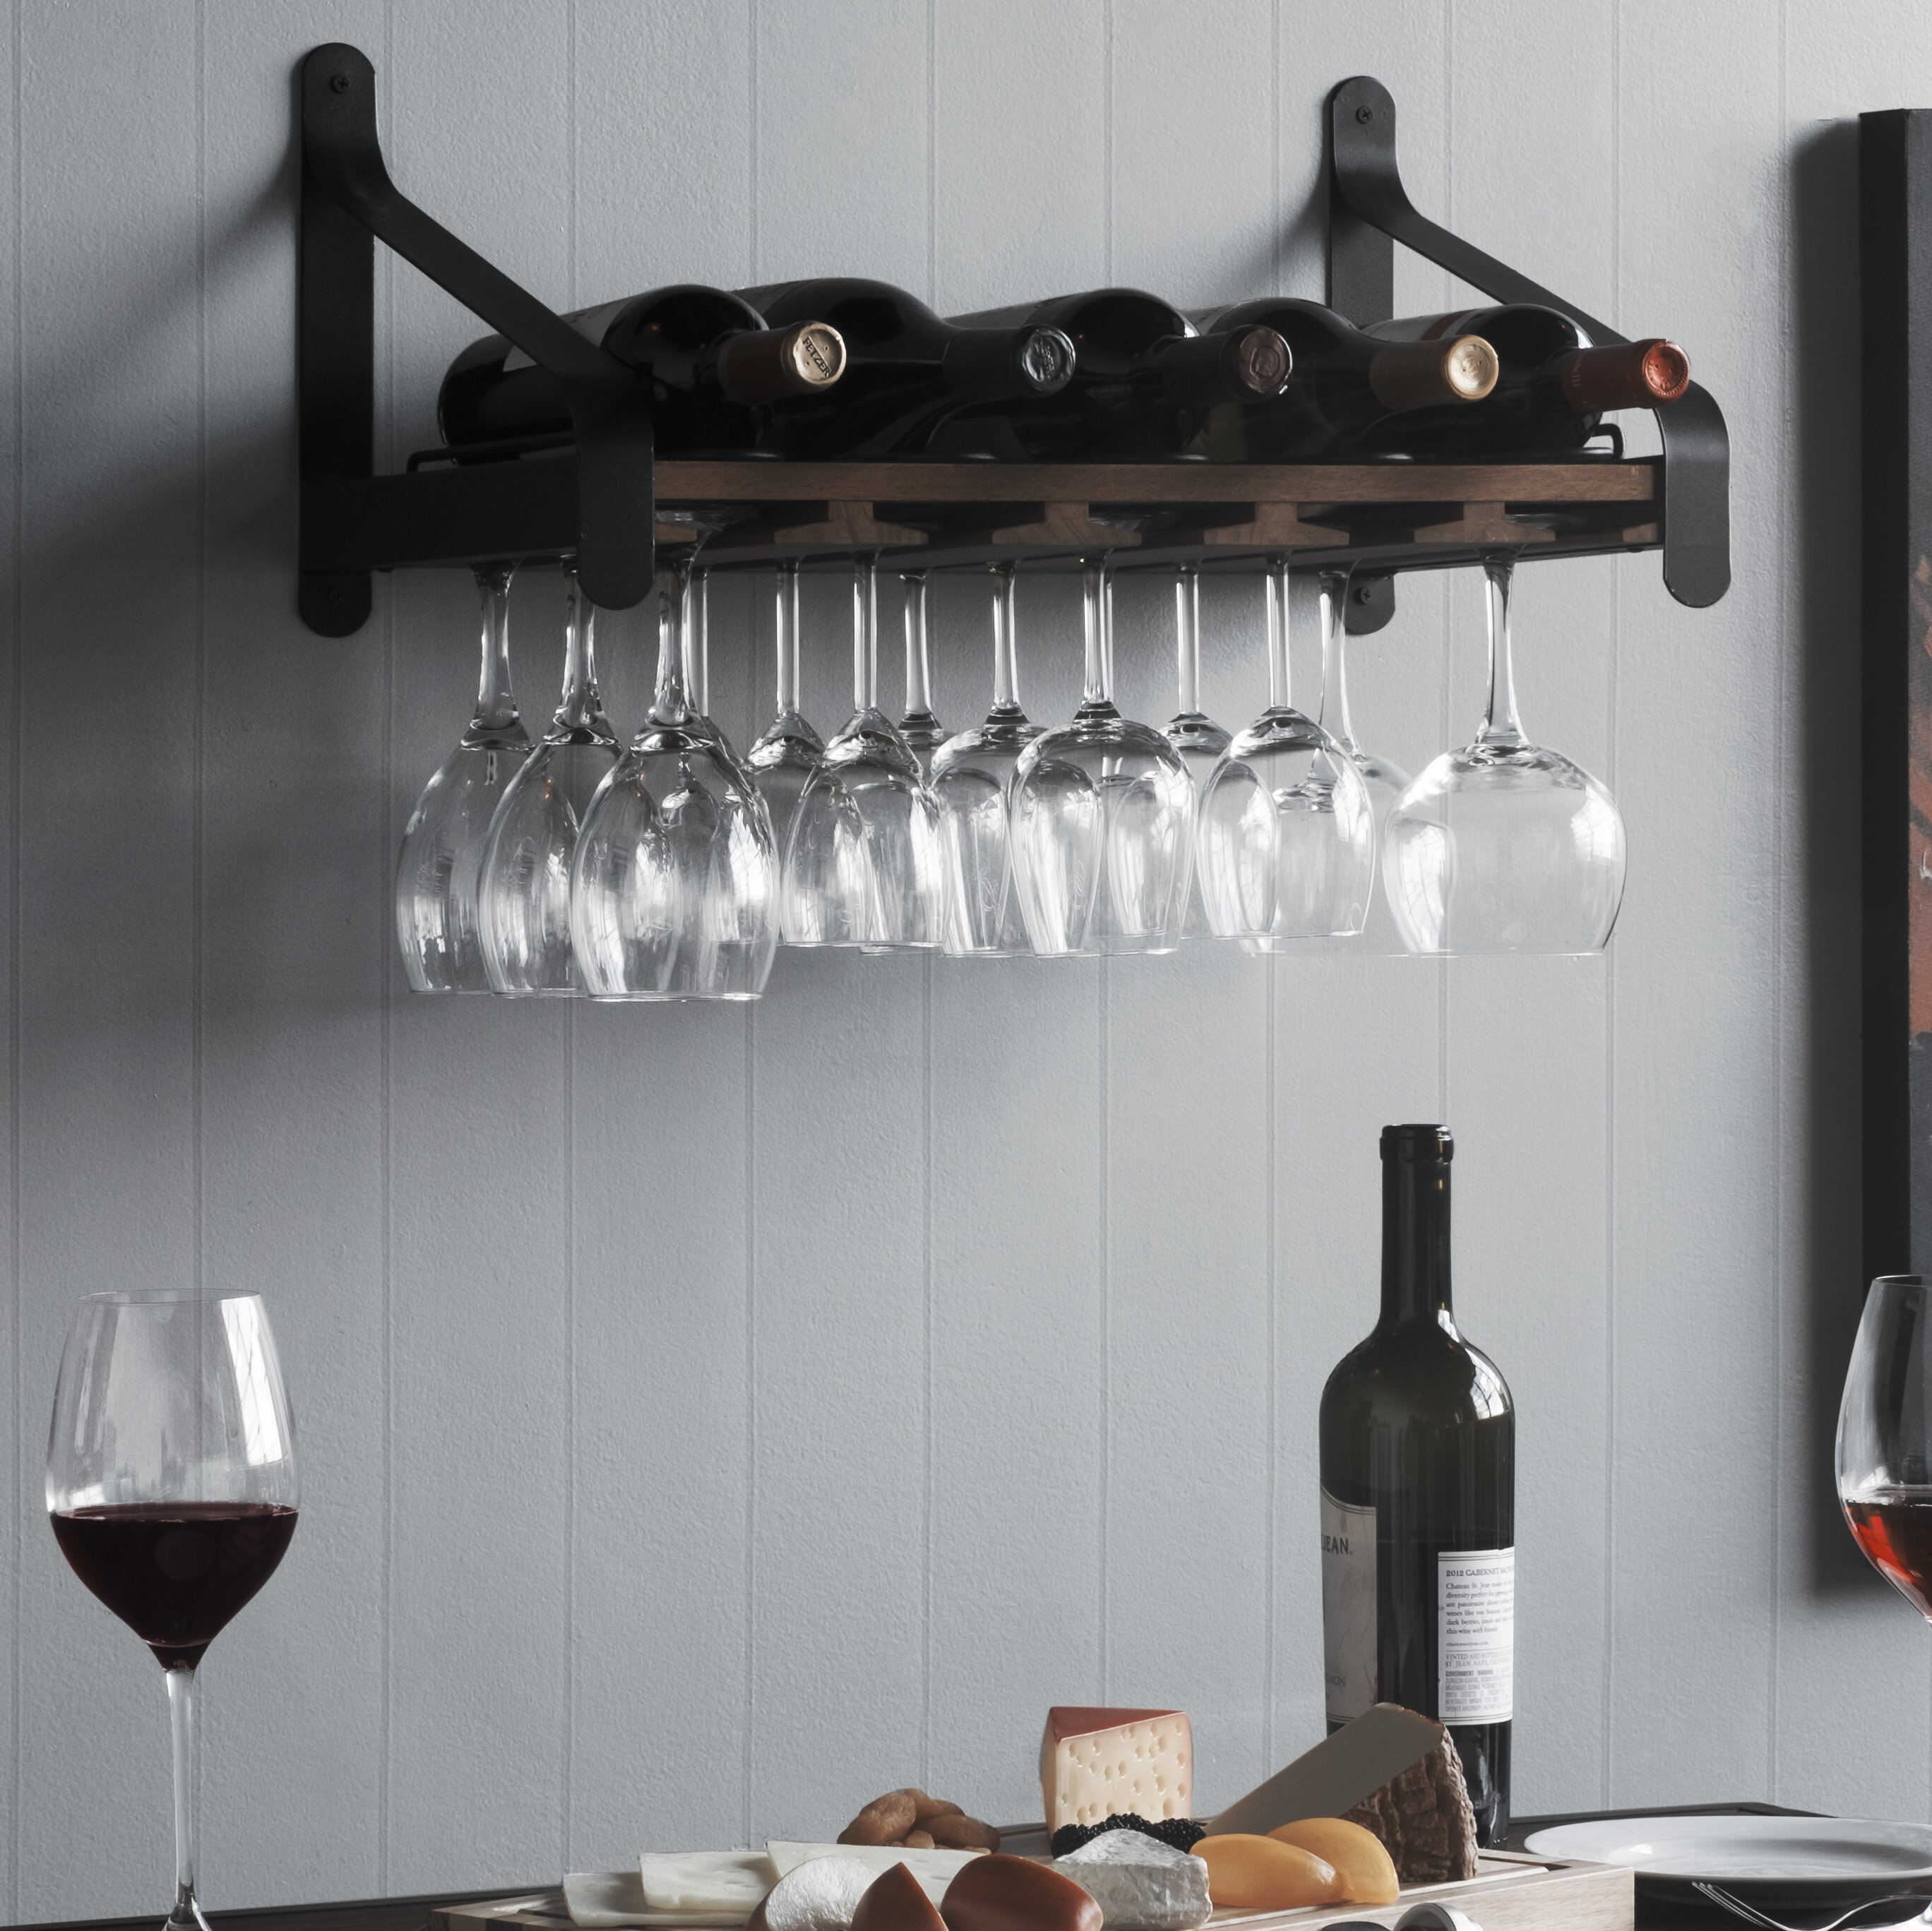 Union Rustic Stowe 5 Bottle Solid Wood Wall Mounted Wine Bottle And Glass Rack In Walnut Reviews